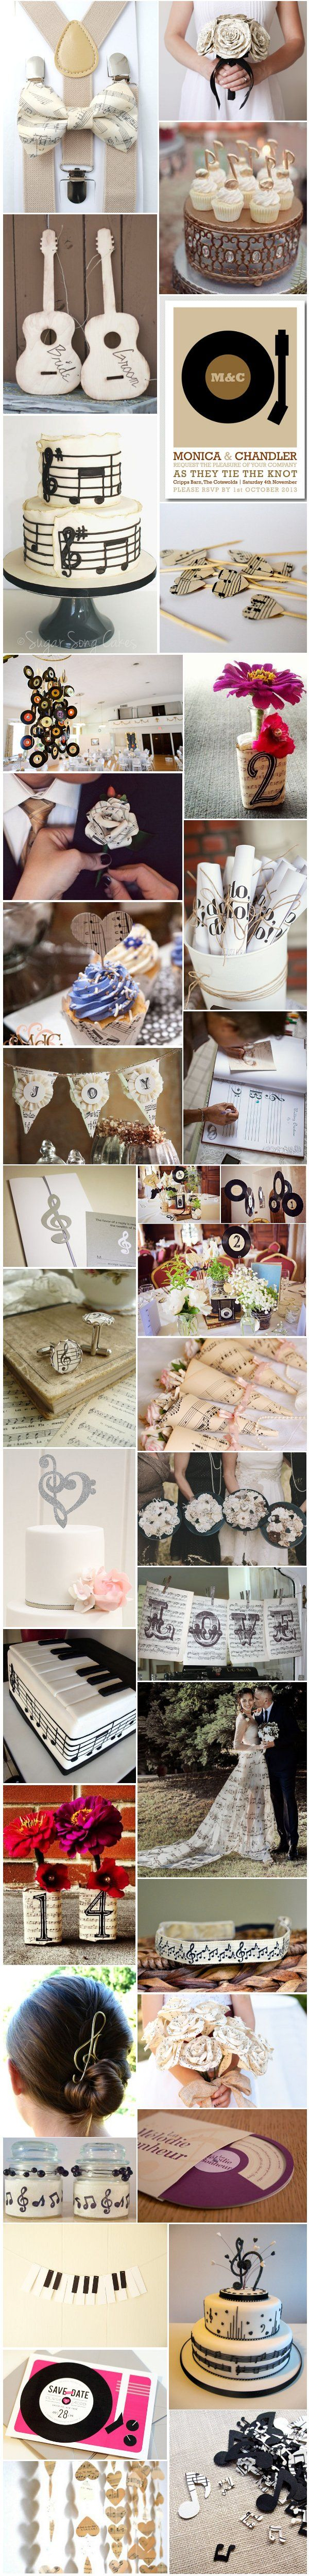 best 25 quinceanera themes ideas on pinterest fairytale wedding themes prom themes and. Black Bedroom Furniture Sets. Home Design Ideas